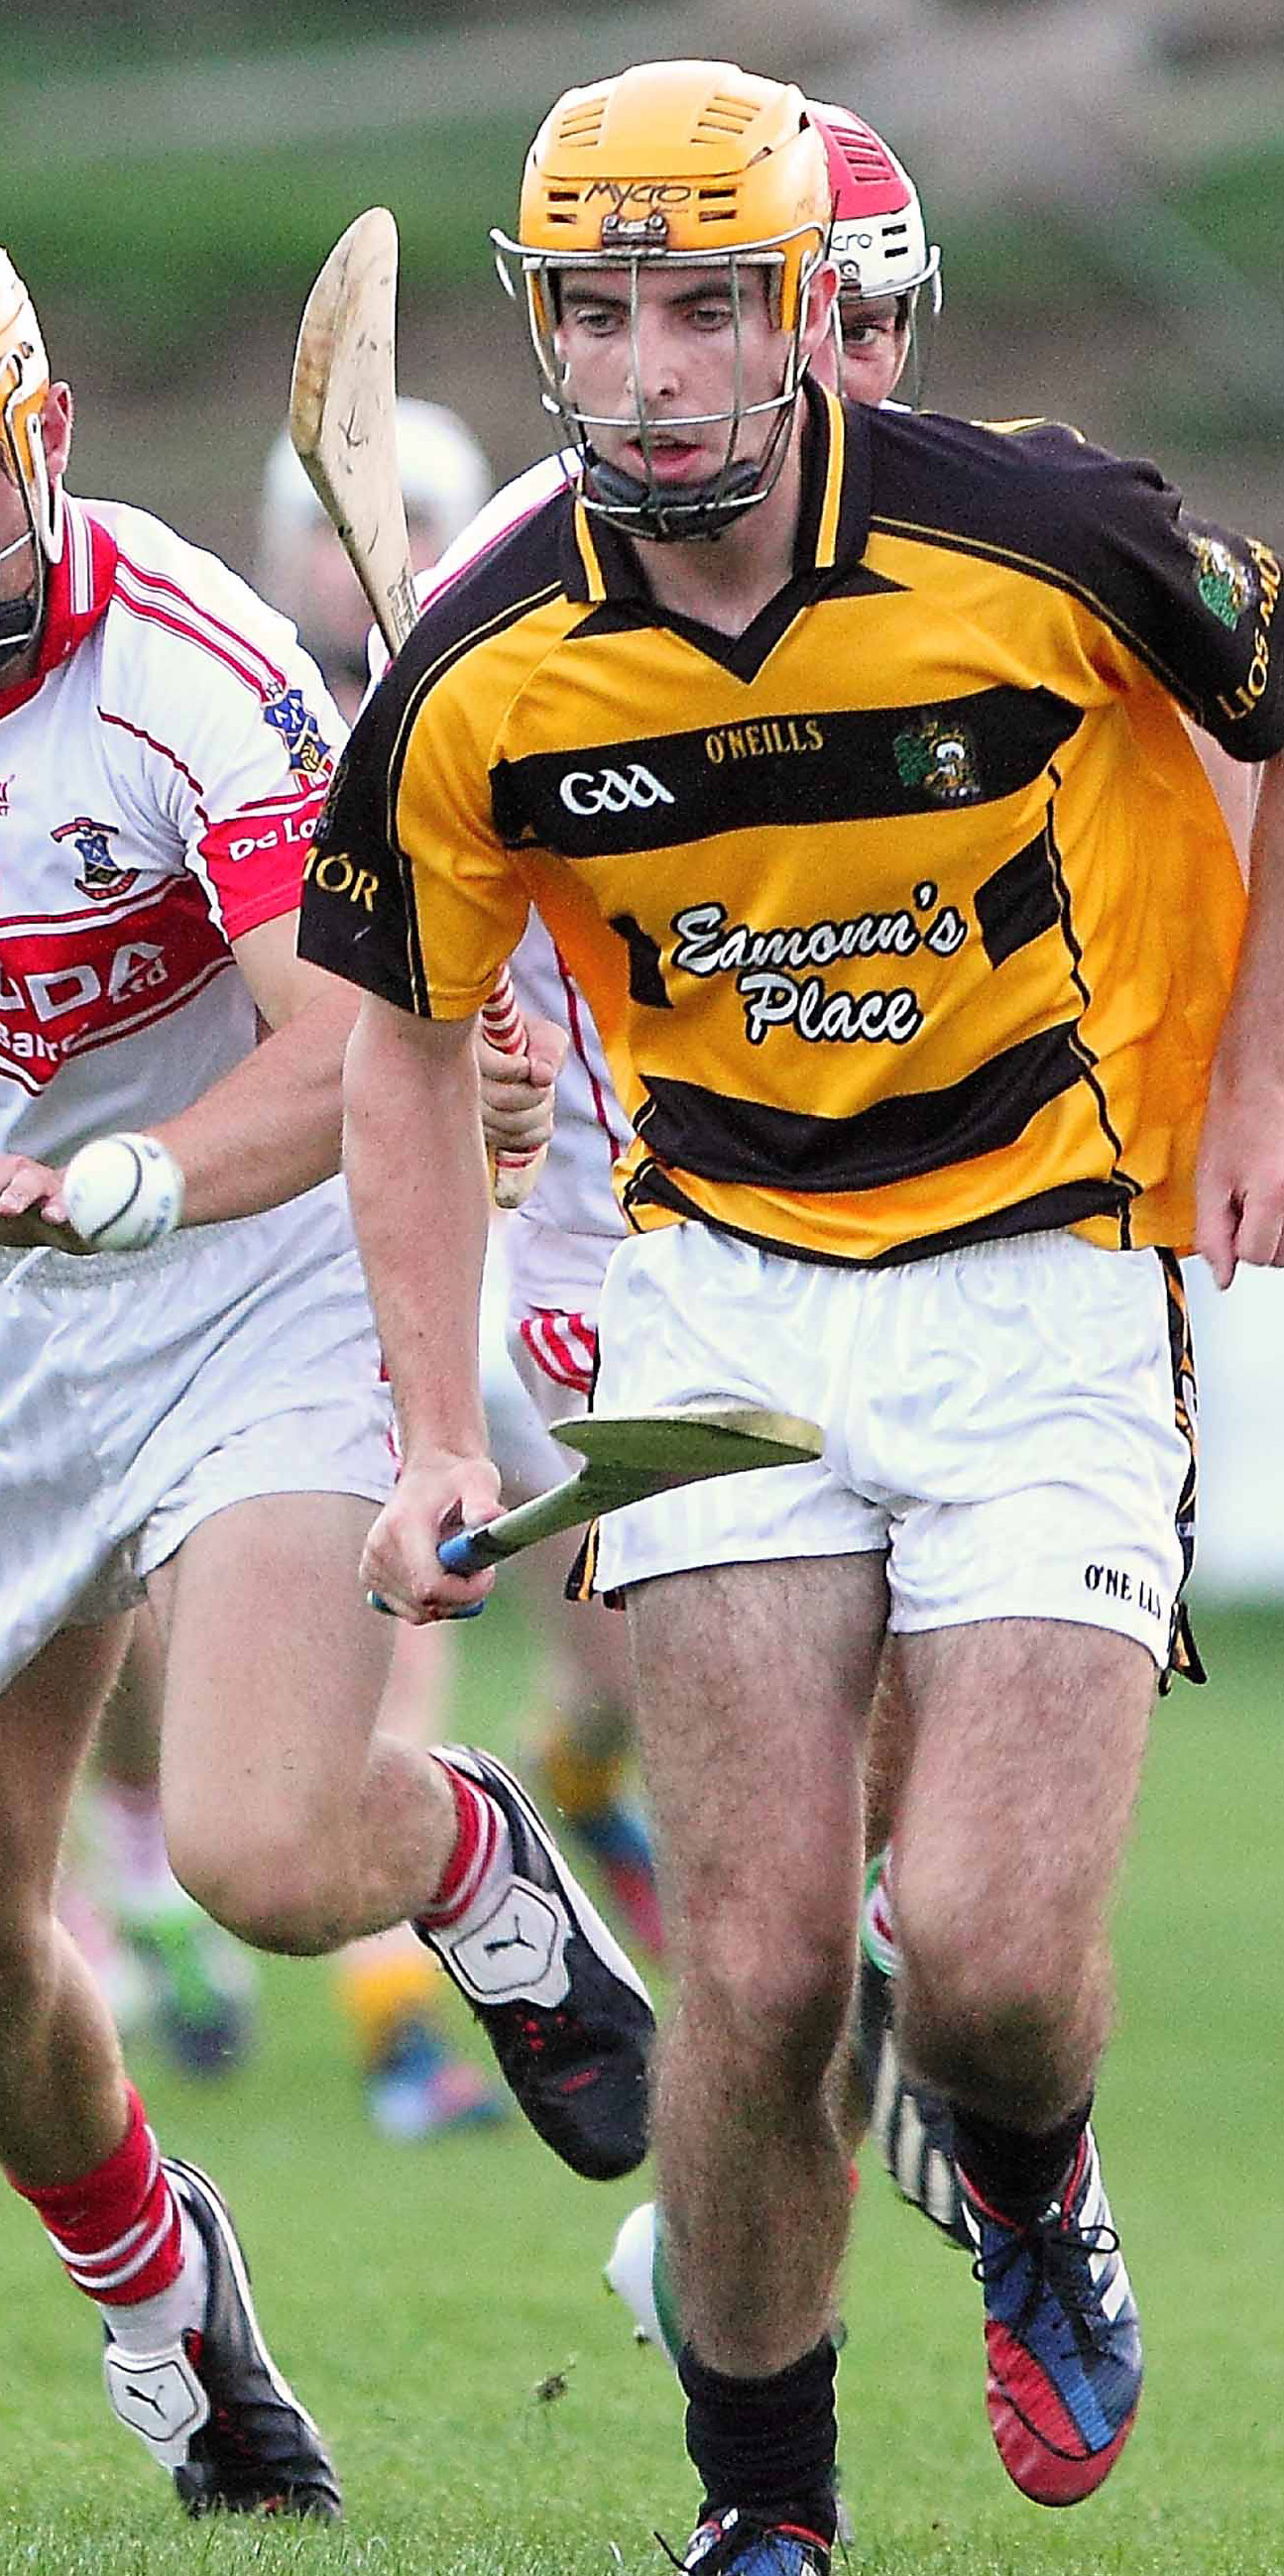 Lismore's Paudie Prendergast is aiming for a Munster IHC title in Mallow. | Photo: Noel Browne